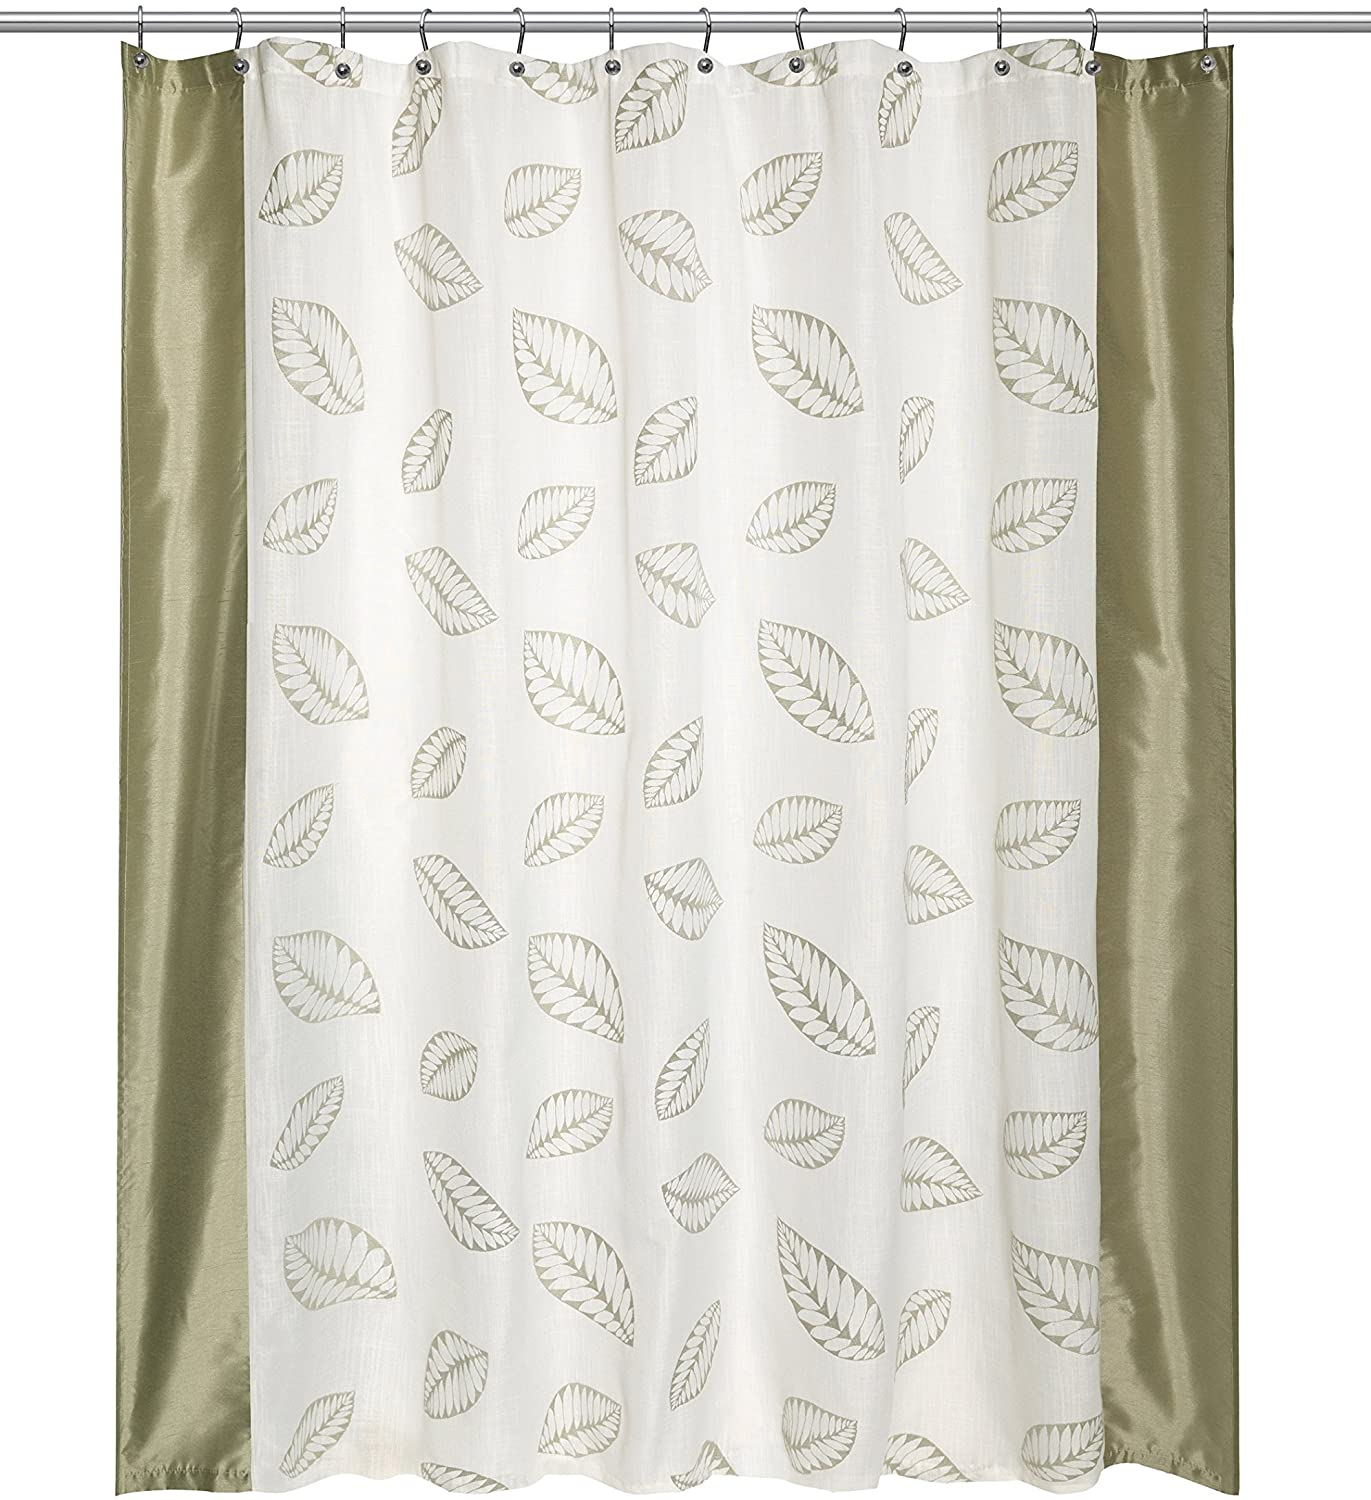 Popular Bath Shower Curtain, Fiji Collection, 70 x 72, Mint